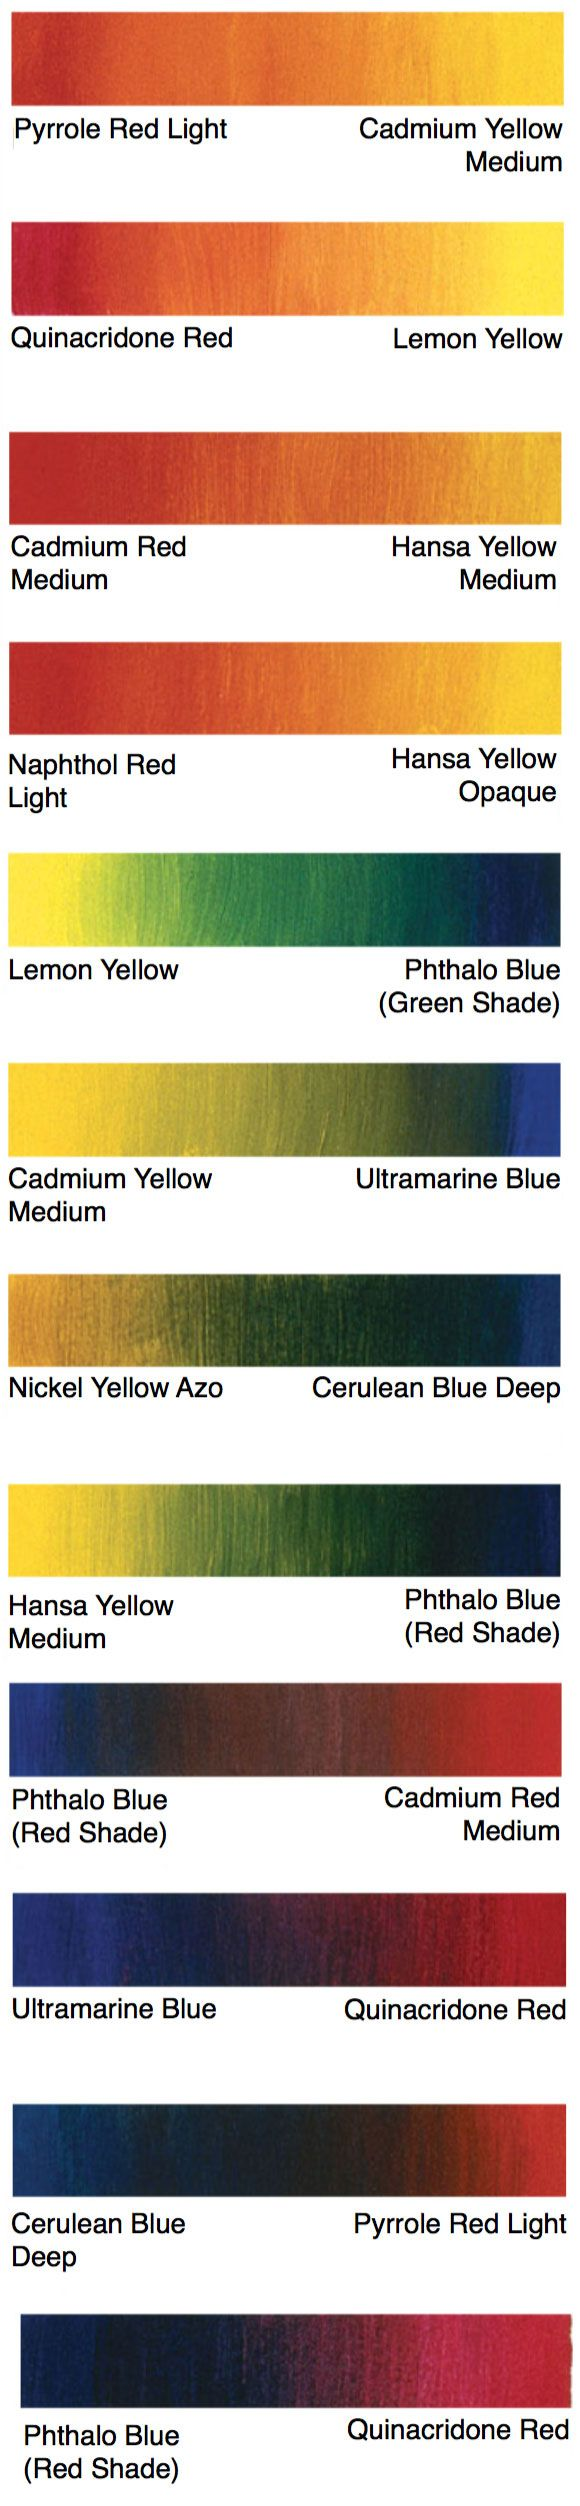 Helpful color mixing chart and tips from Nita Leland at ArtistsNetwork.com #painting #art